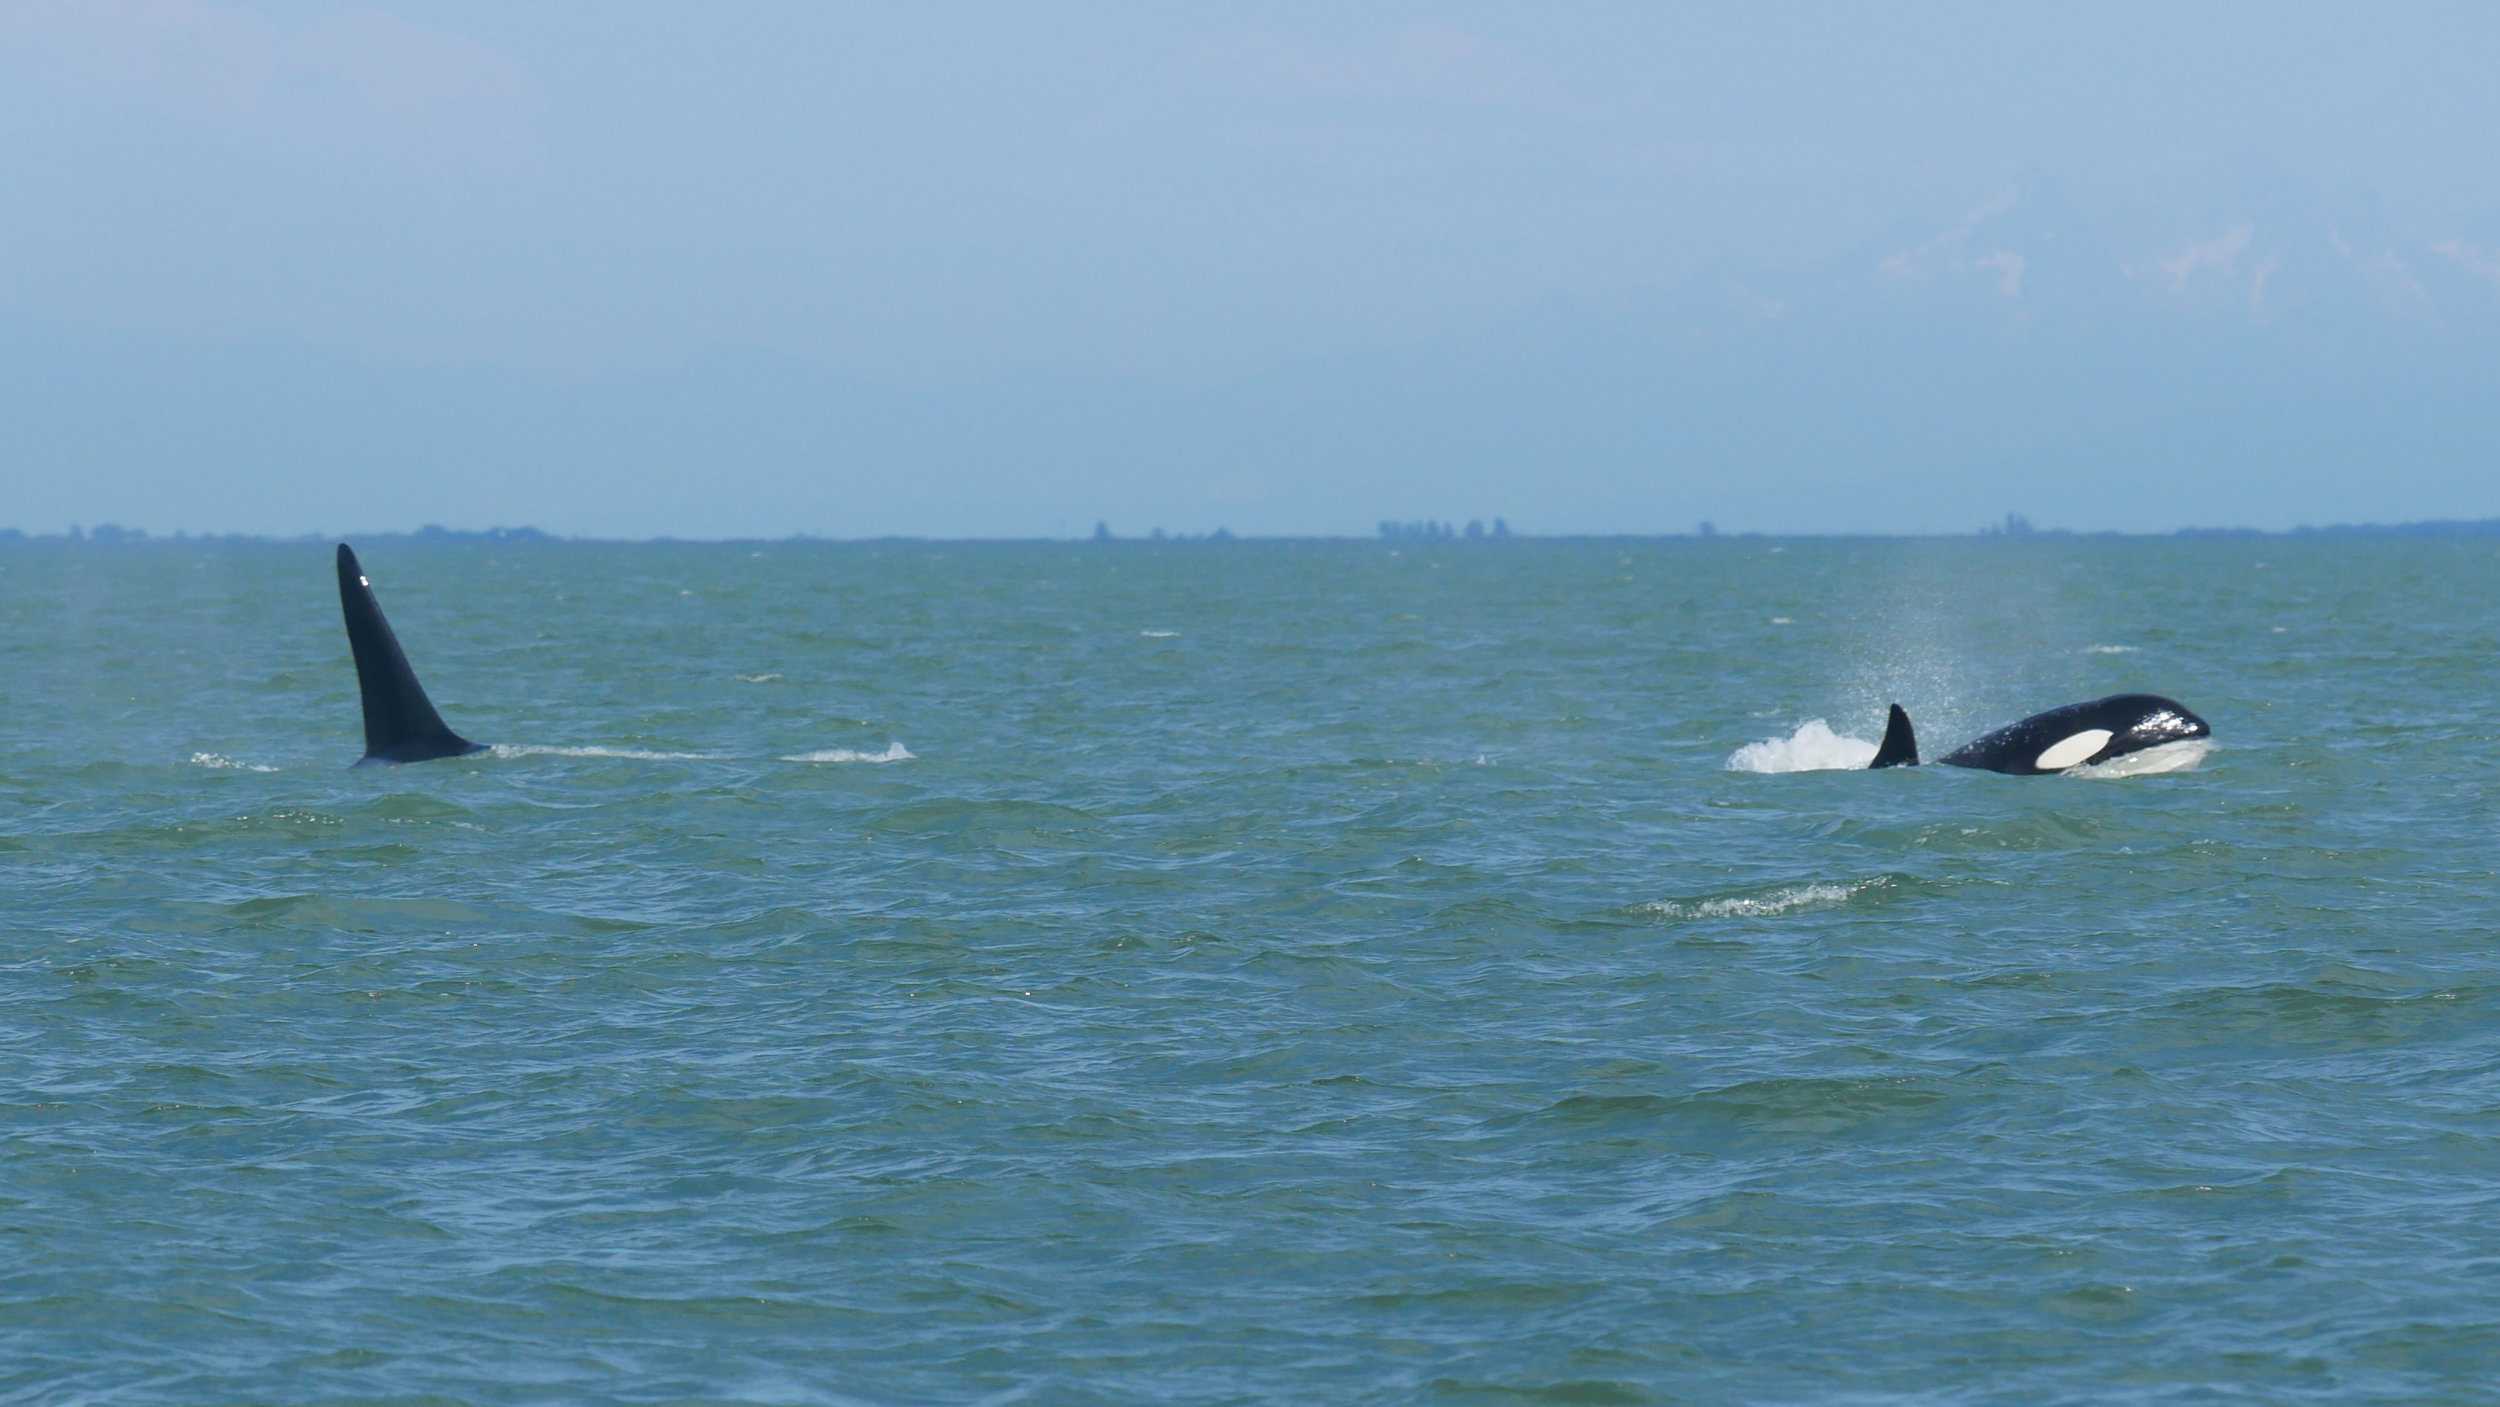 T124A3 (right) and T077B (left) surfacing in the Strait. Photo by Rebeka Pirker.